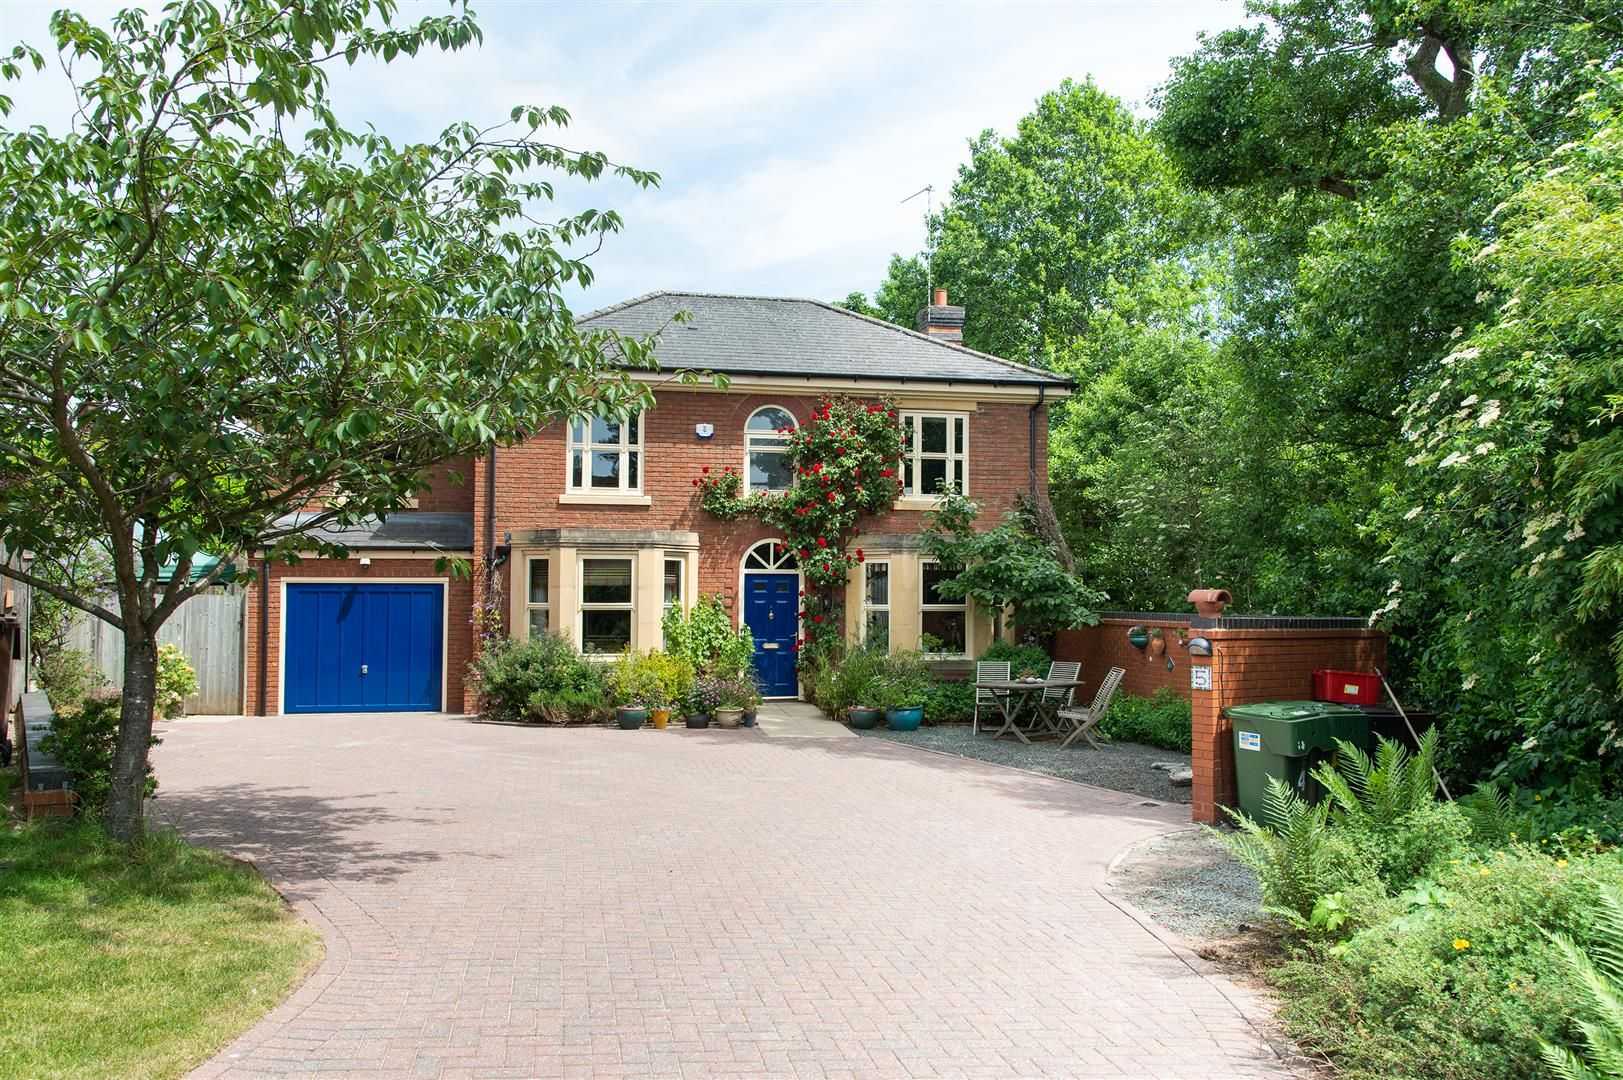 5 bed house for sale in Hagley 37